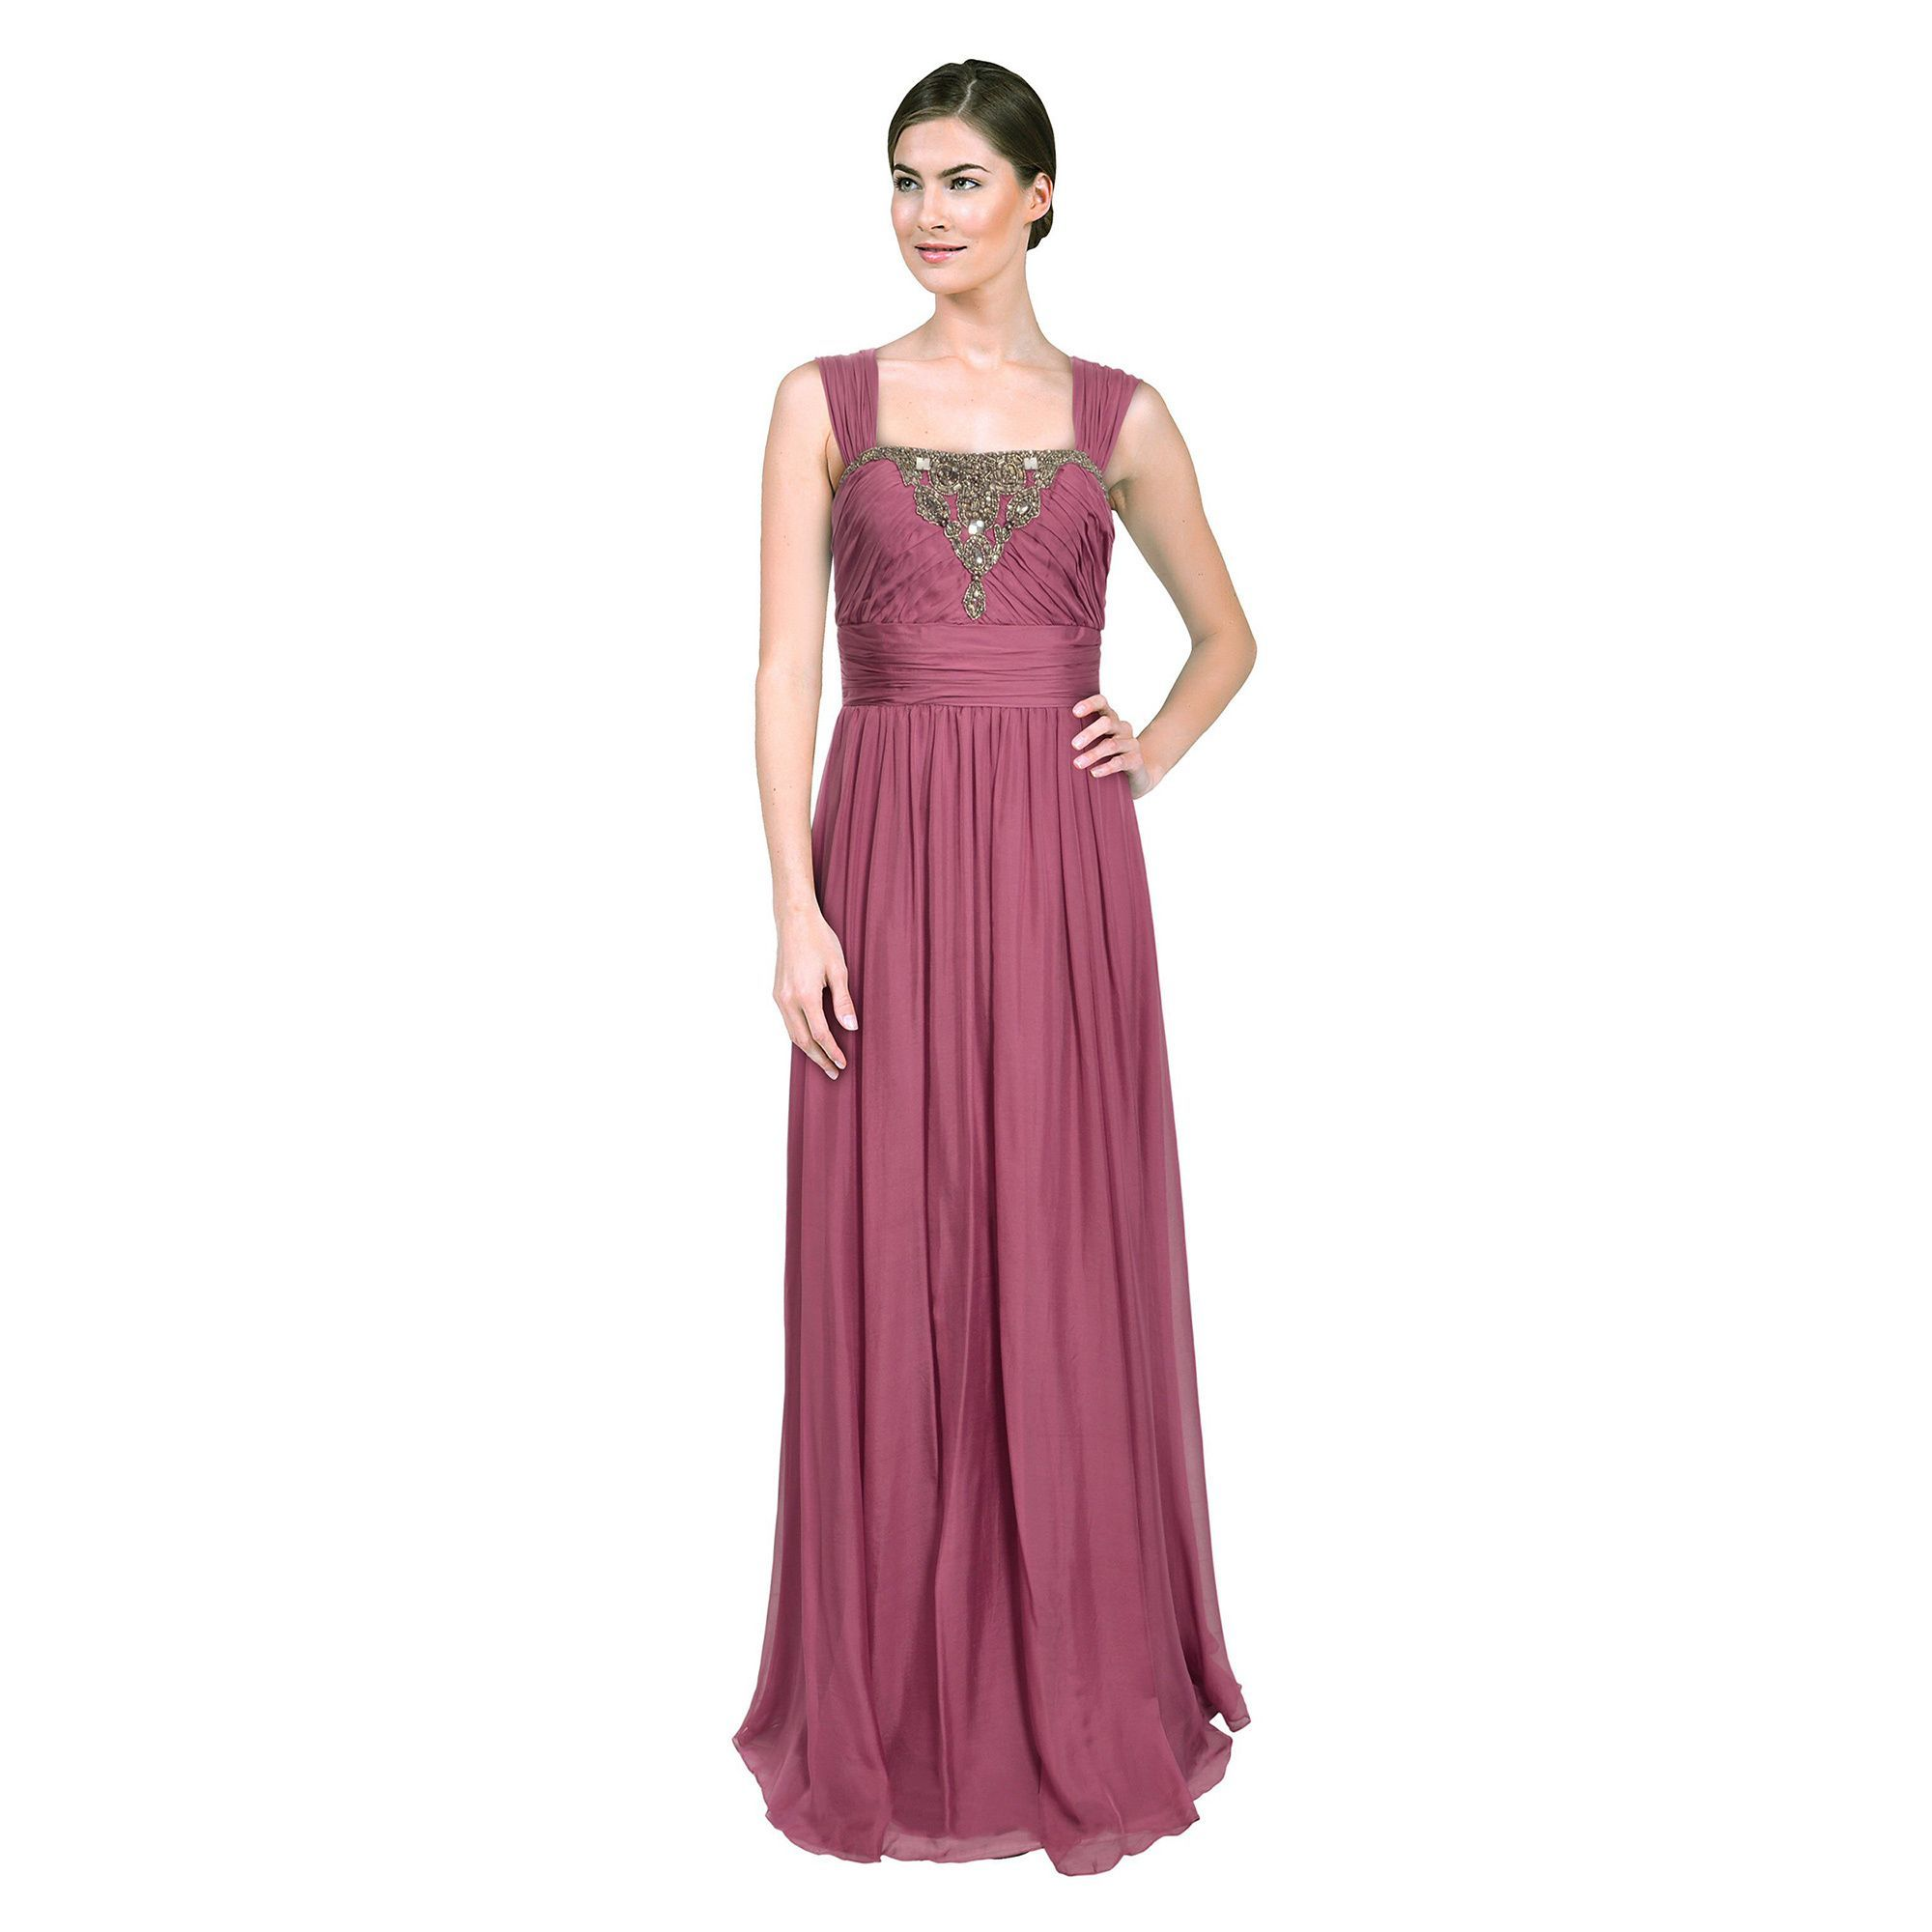 This airy purple chiffon evening gown features a classic sleeveless ...